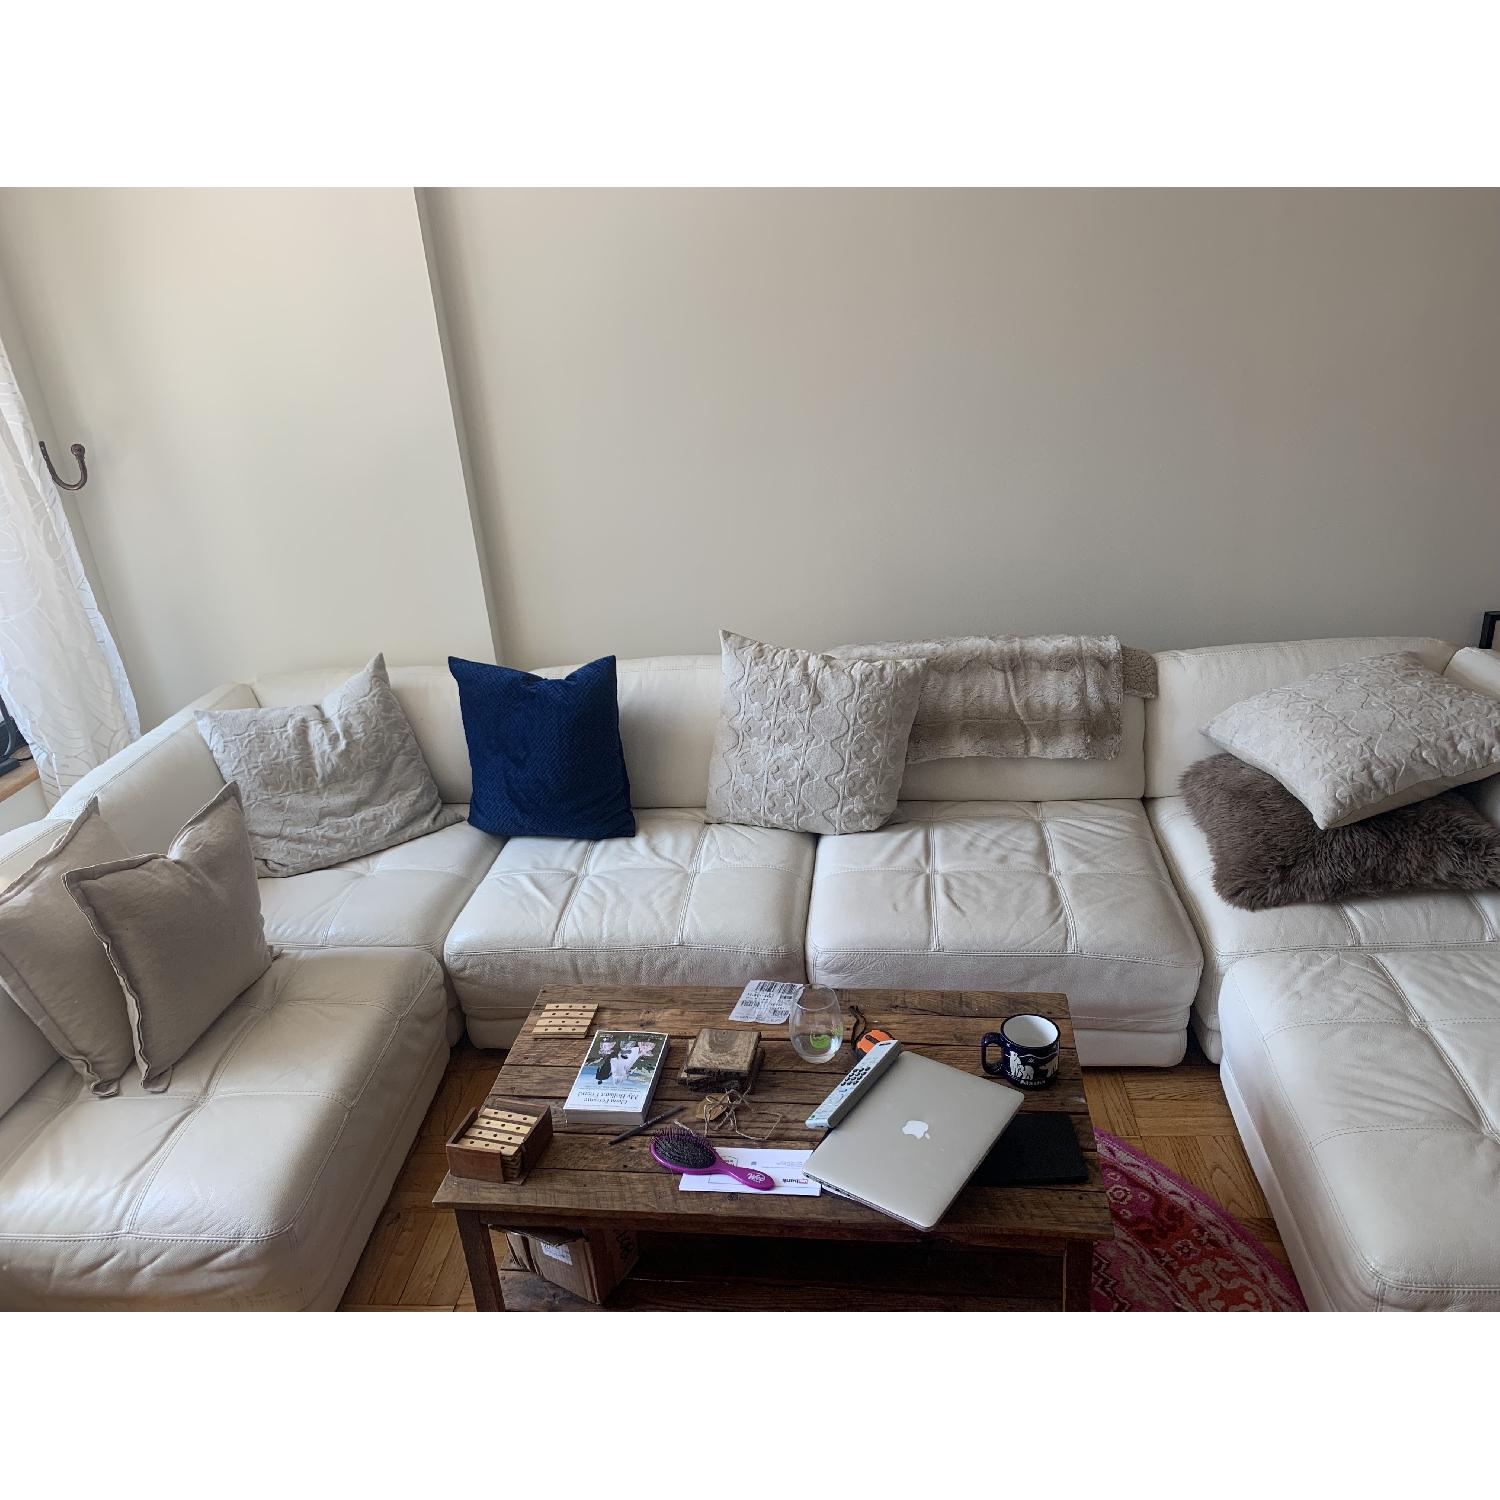 Sensational Chateau Dax White Tufted Leather 6 Piece Sectional Sofa Unemploymentrelief Wooden Chair Designs For Living Room Unemploymentrelieforg